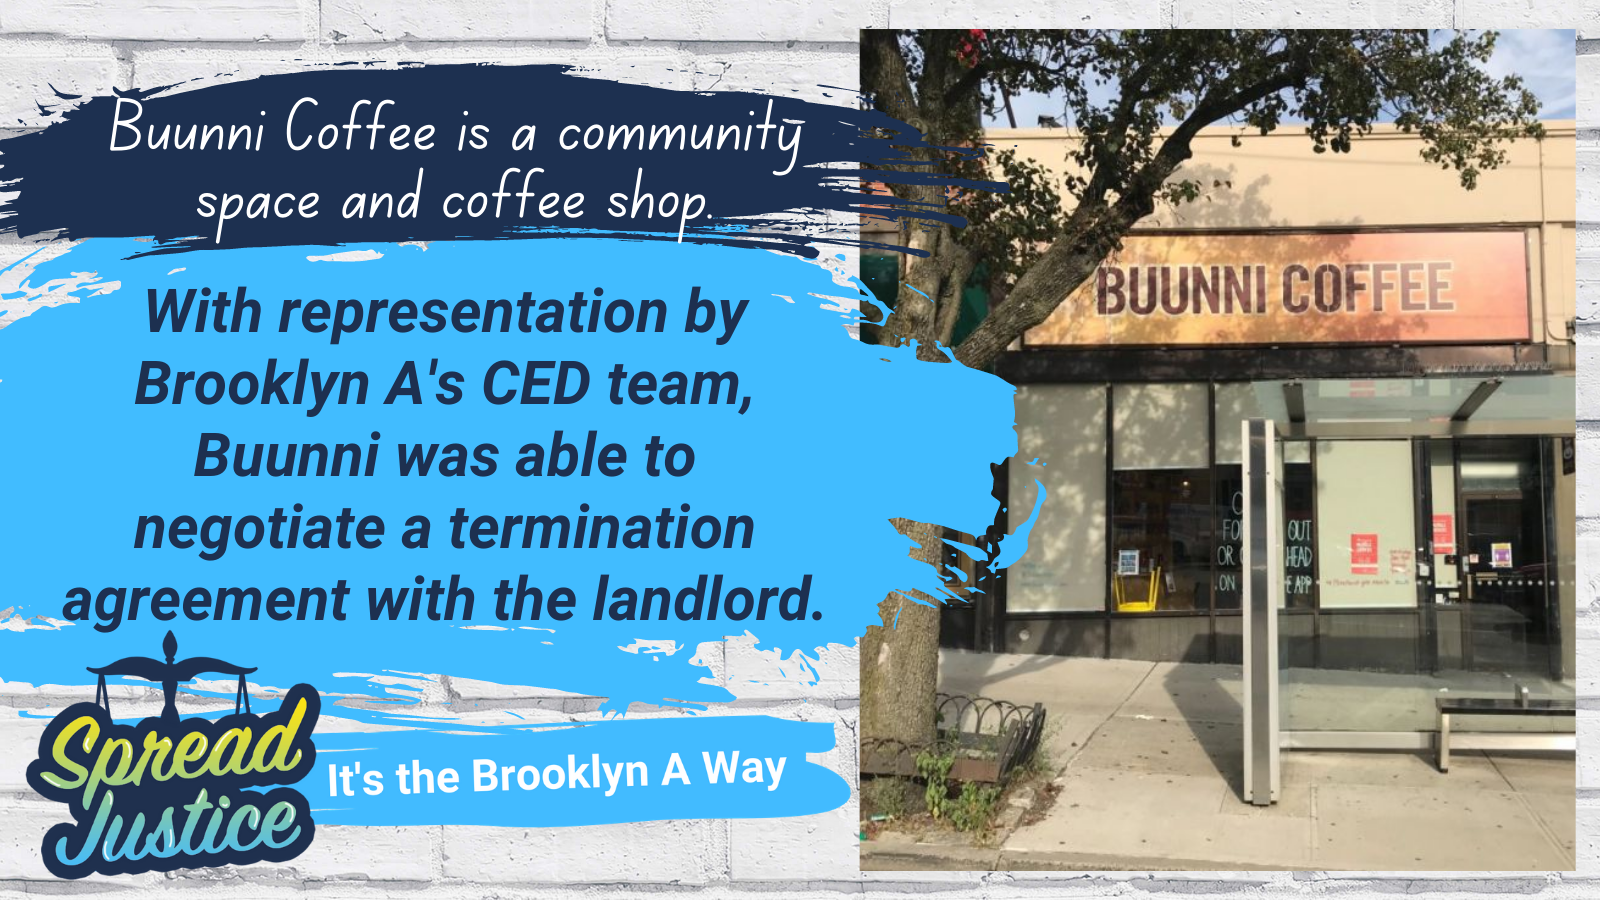 Buunni Coffee: The Story Of One Small Enterprise